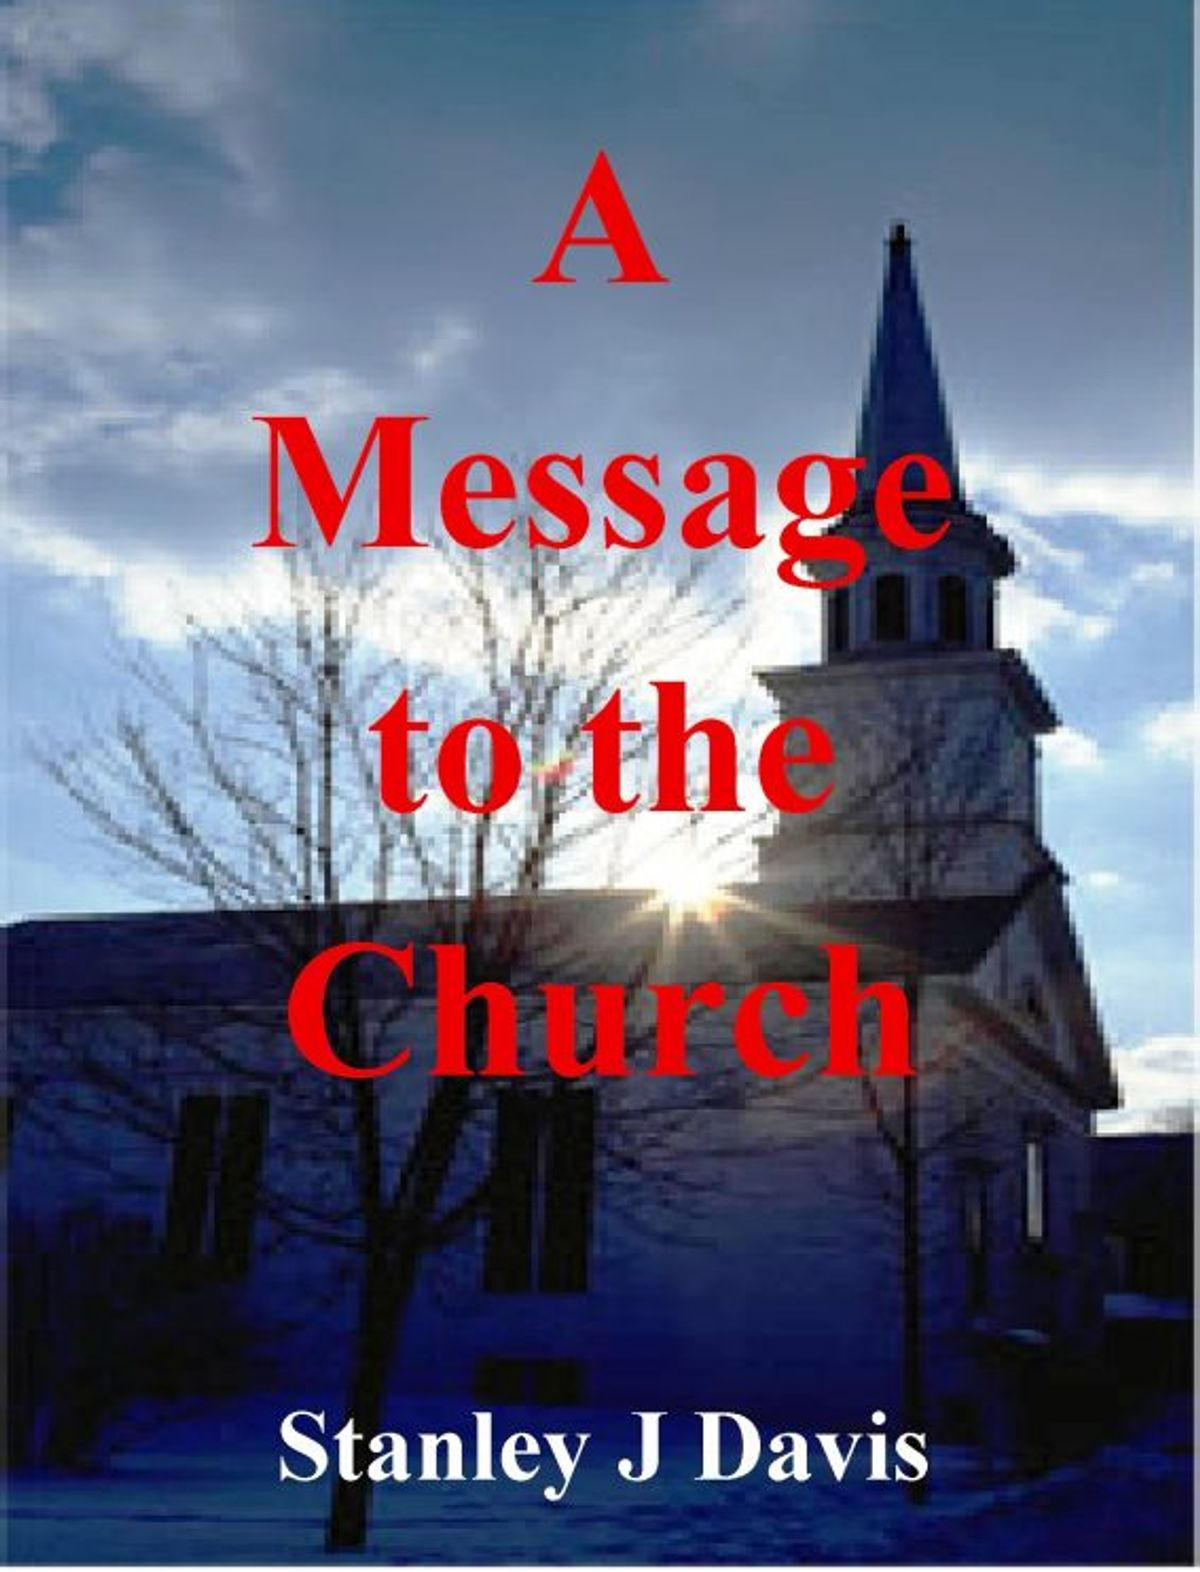 COLOMBIAN SISTER: MESSAGE TO THE CHURCH